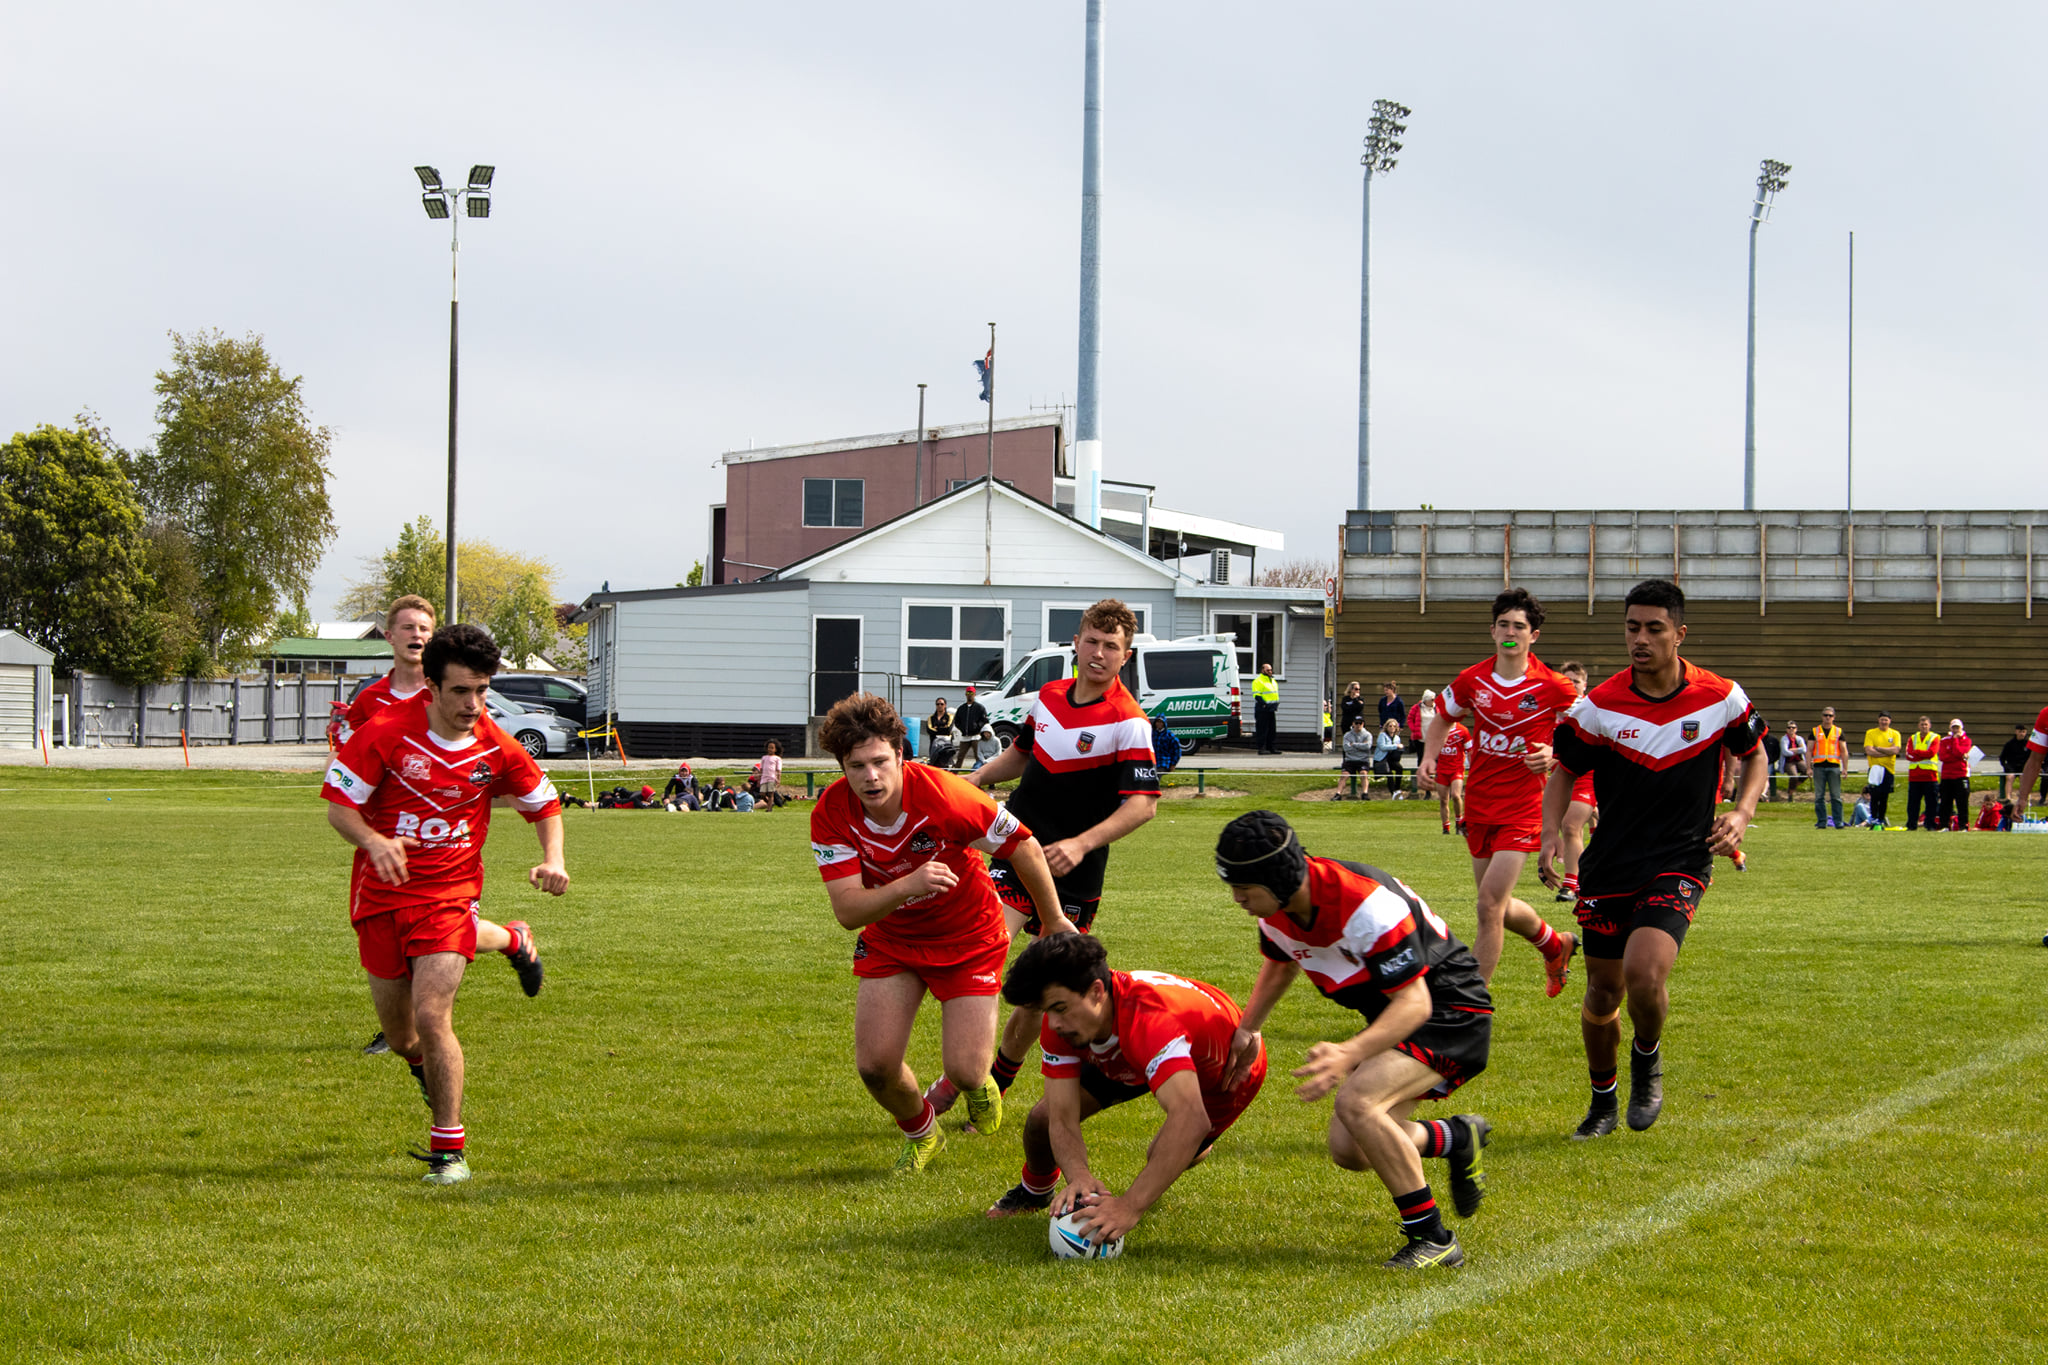 NZRL National Under 20s competition kicks off this weekend